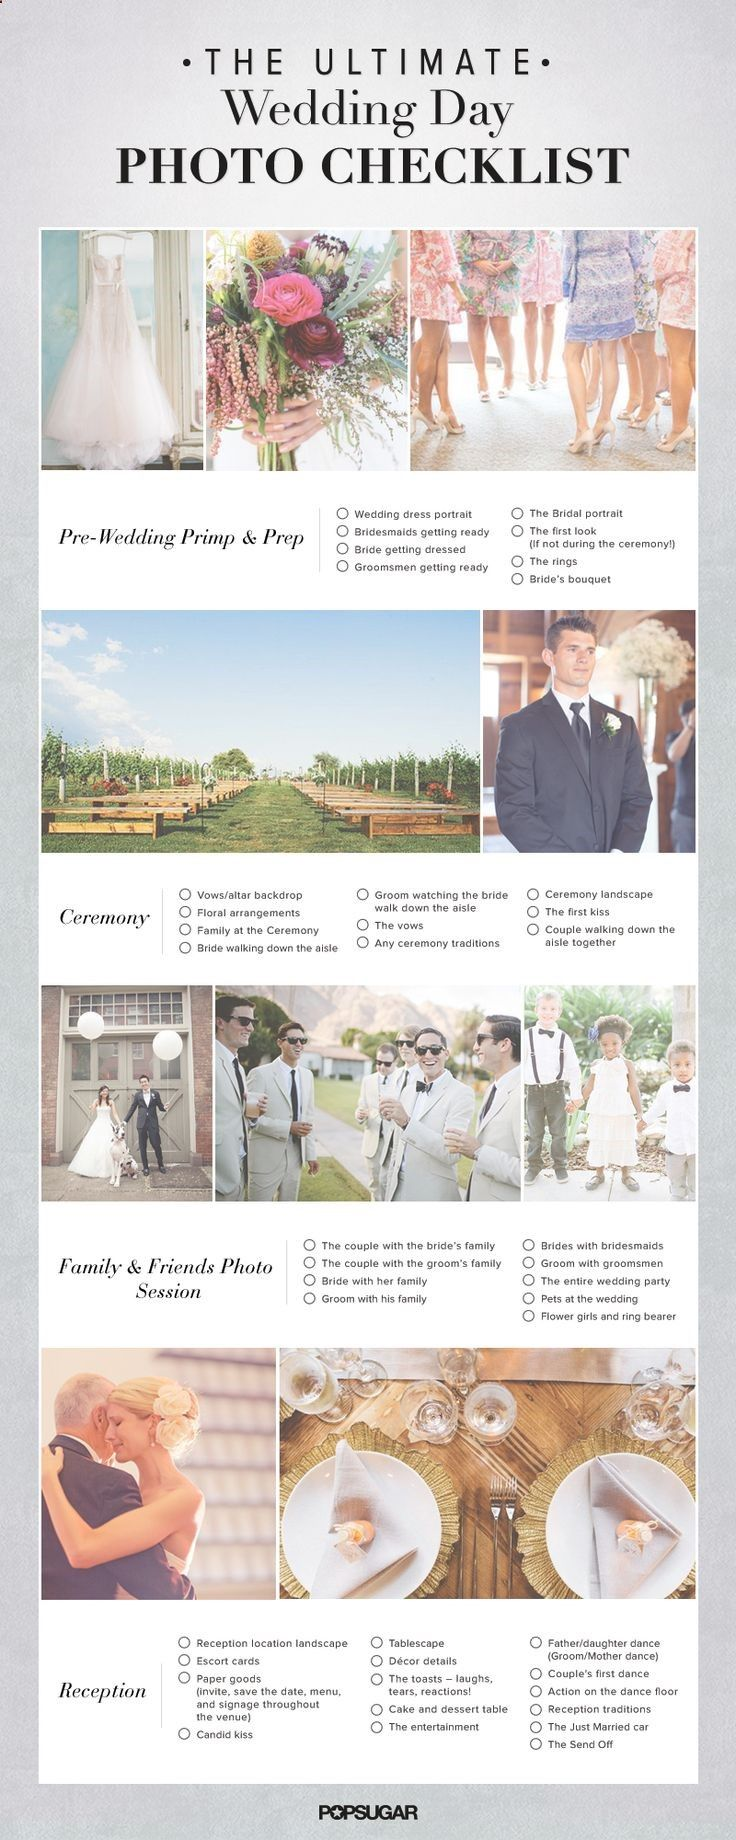 This seems obvious - but you'd be surprised how many get missed.... Wedding #photography checklist!